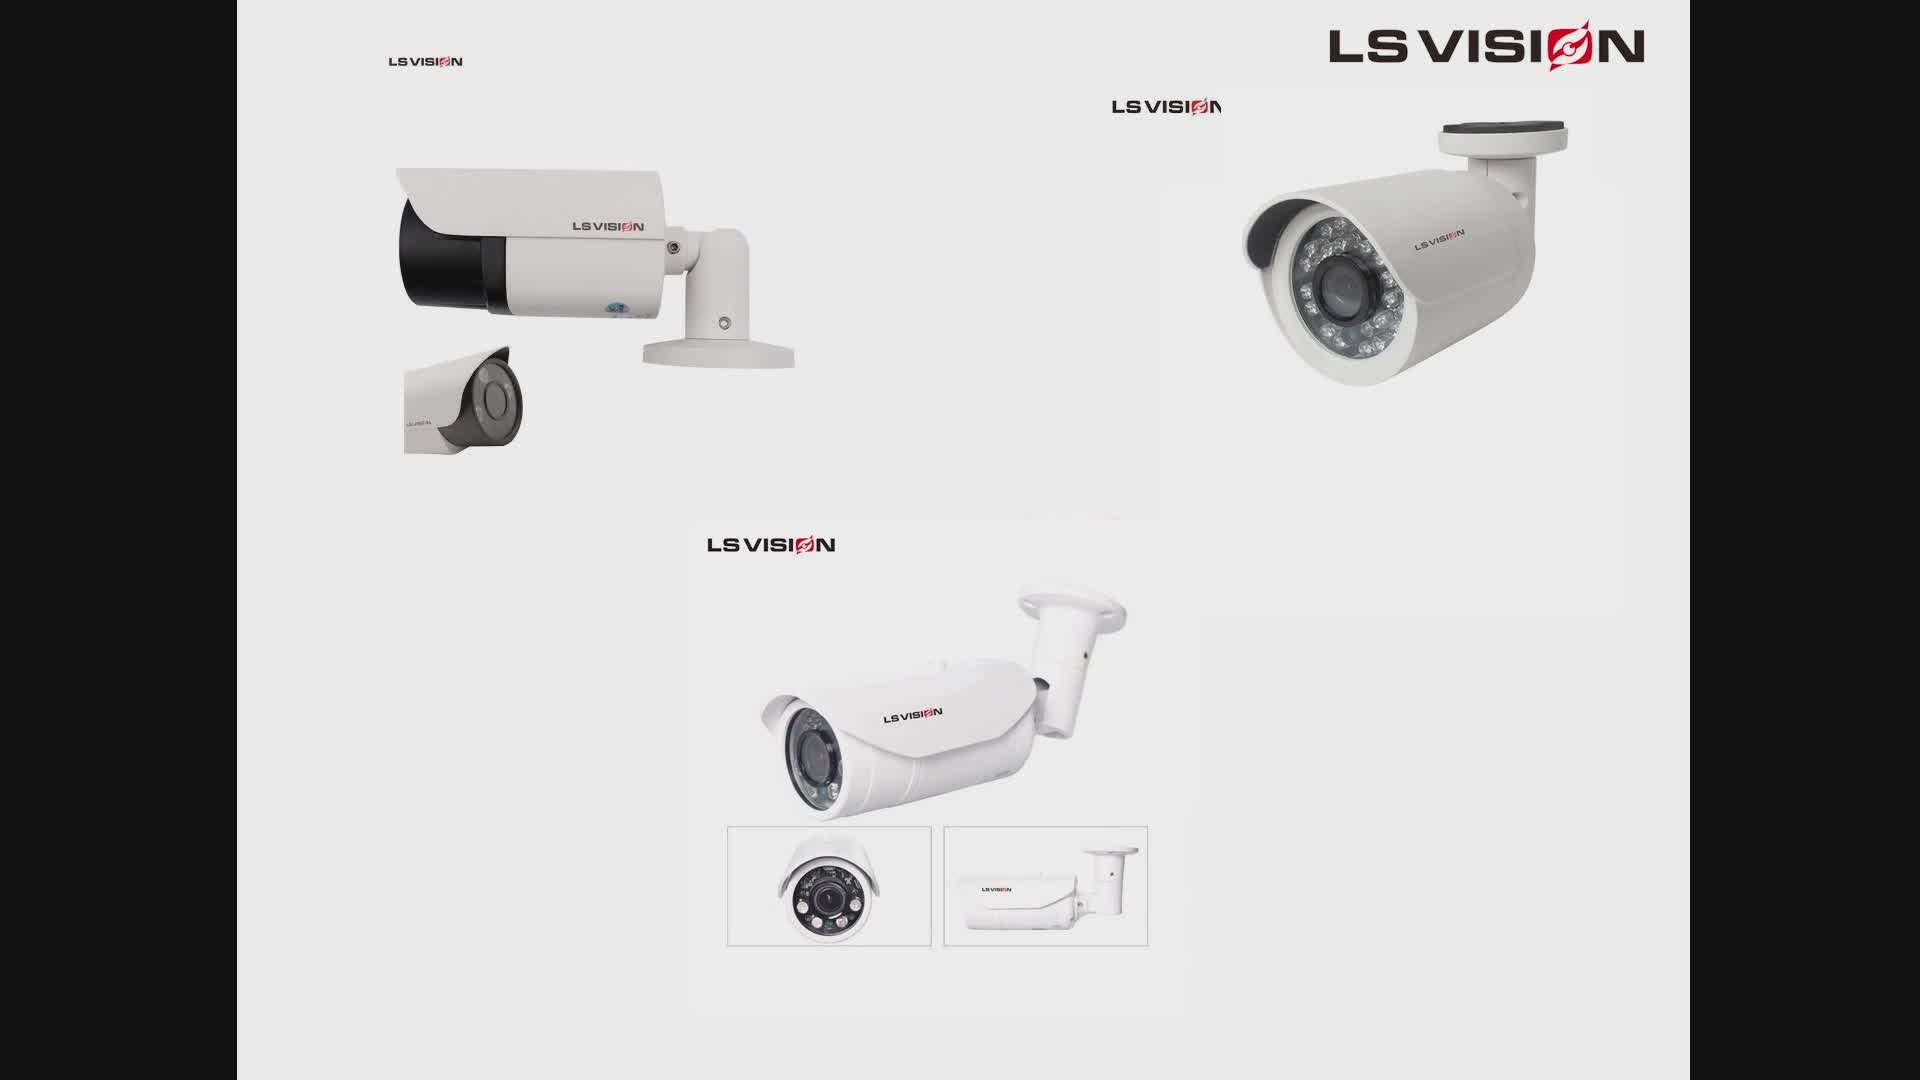 LS VISION Top 10 CCTV Cameras Surveillance System H.265 4mp Motorized Zoom Security IP CCTV Camera